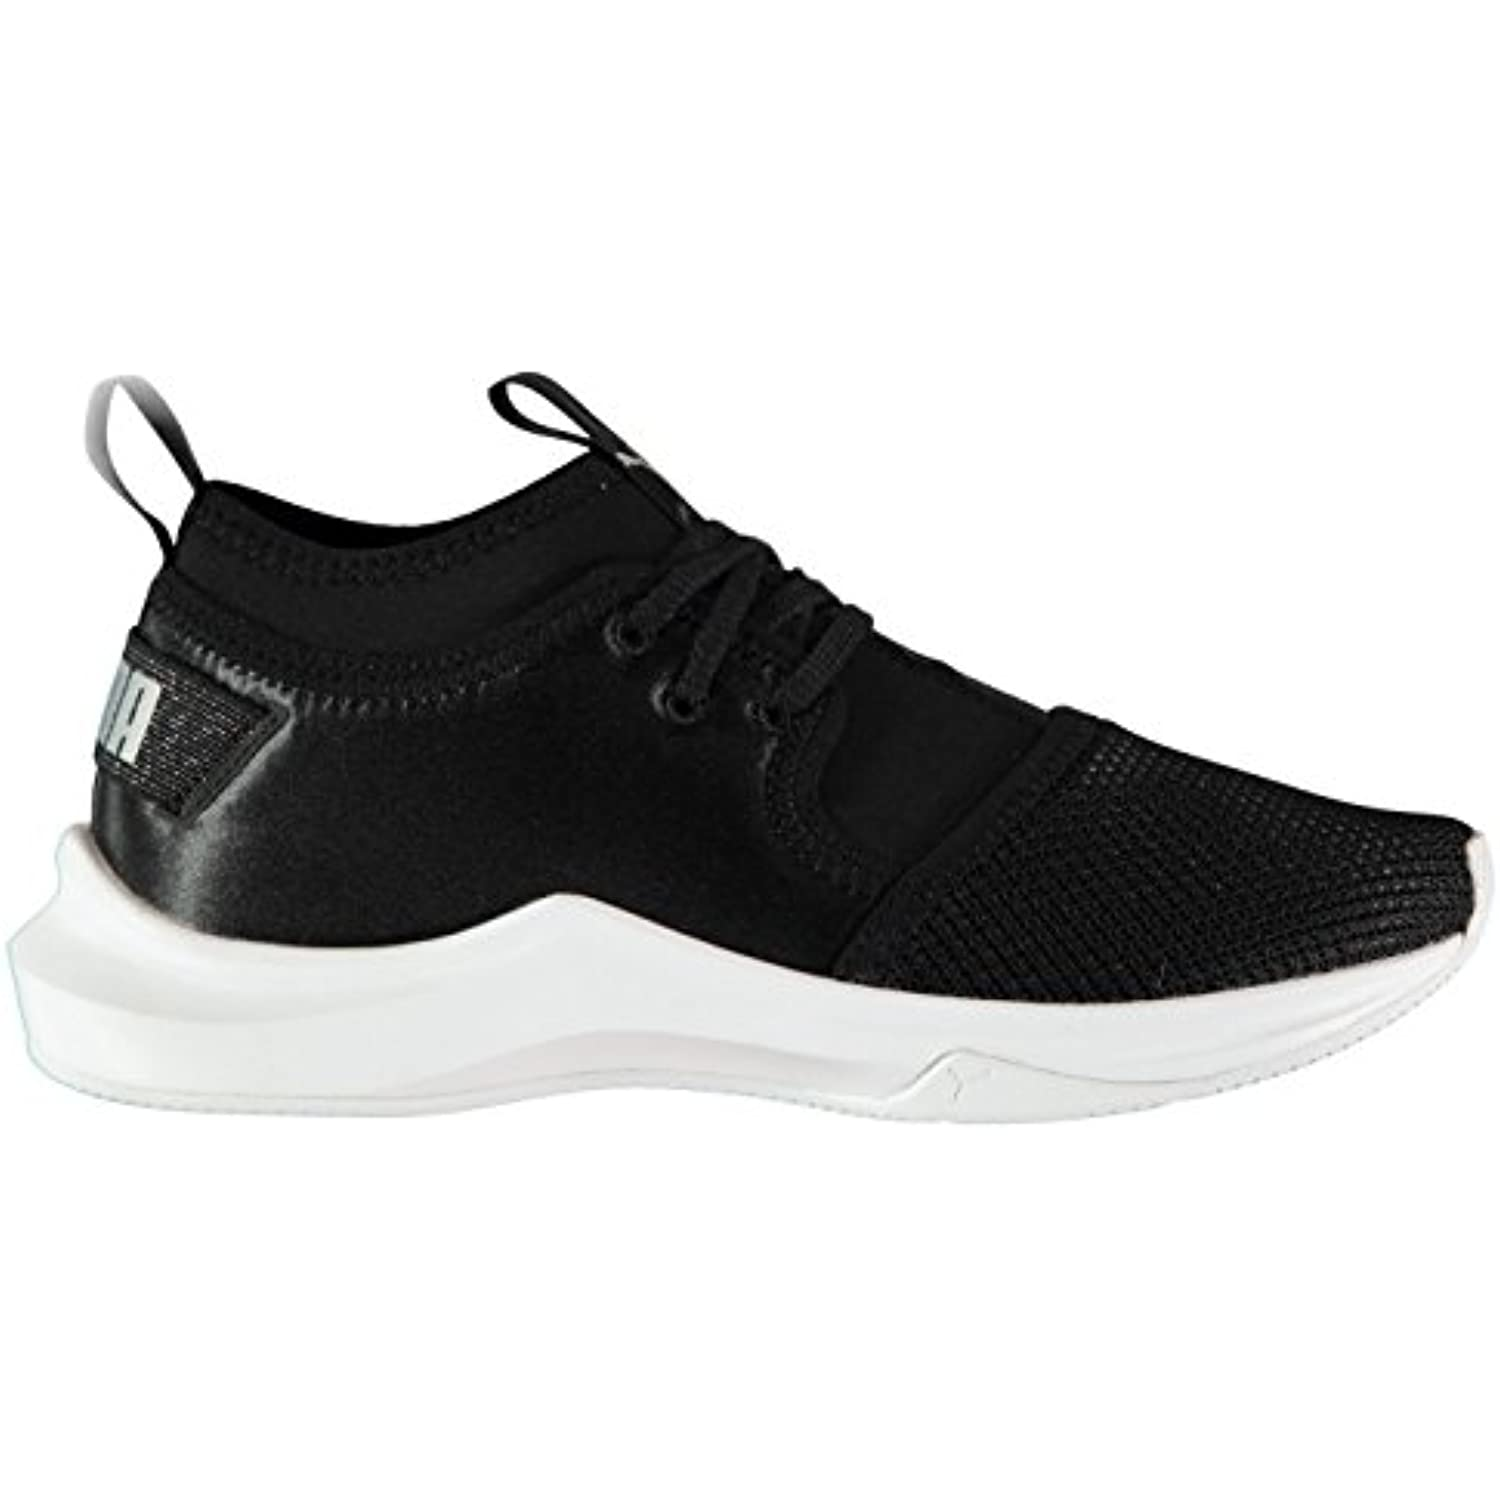 Official Chaussures Puma Phenom satin eacute; Chaussures